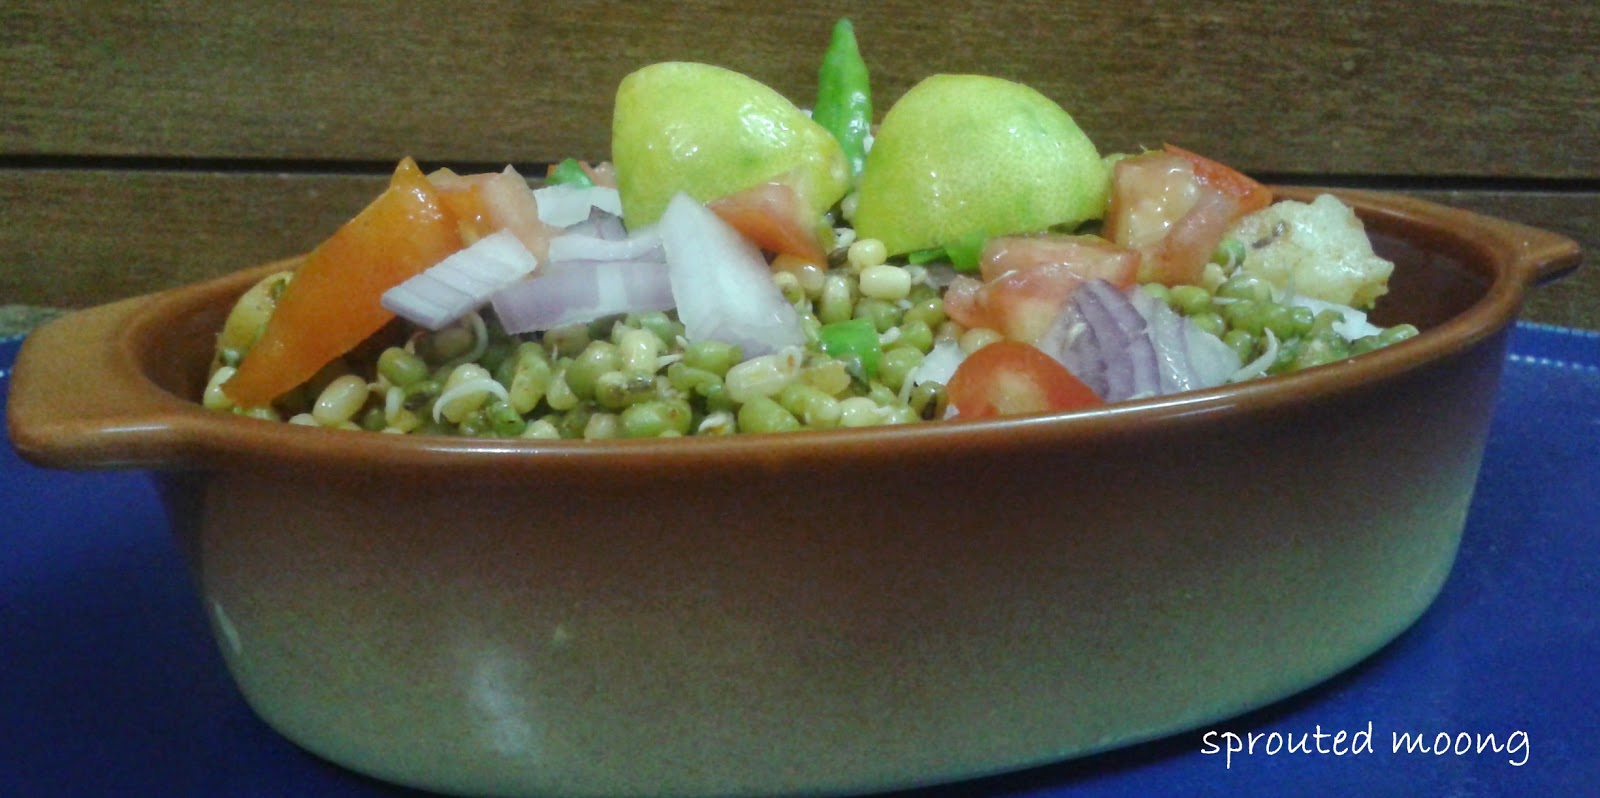 http://www.paakvidhi.com/2015/03/sprouted-moong-chaat.html